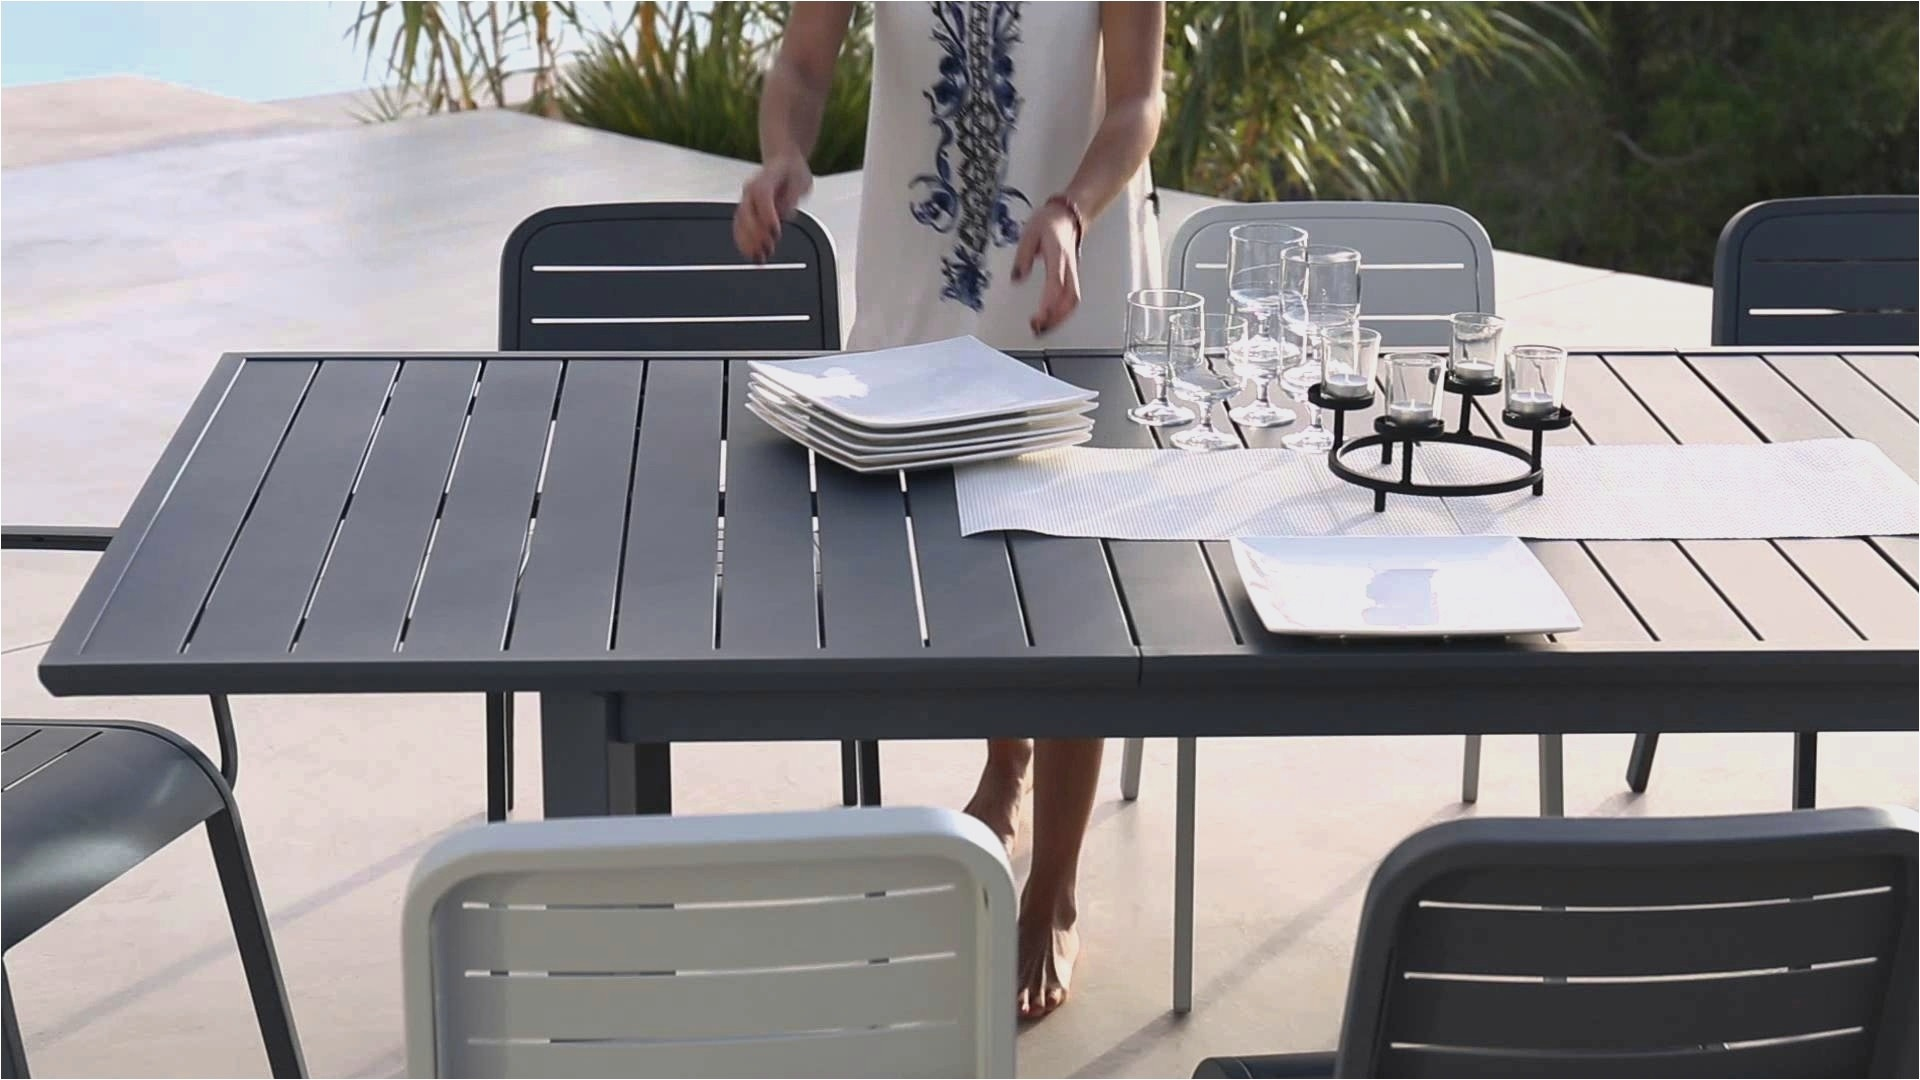 Transat Jardin Carrefour Inspirant Galerie Chaise Longue Carrefour Best Table Et Chaise De Jardin Carrefour